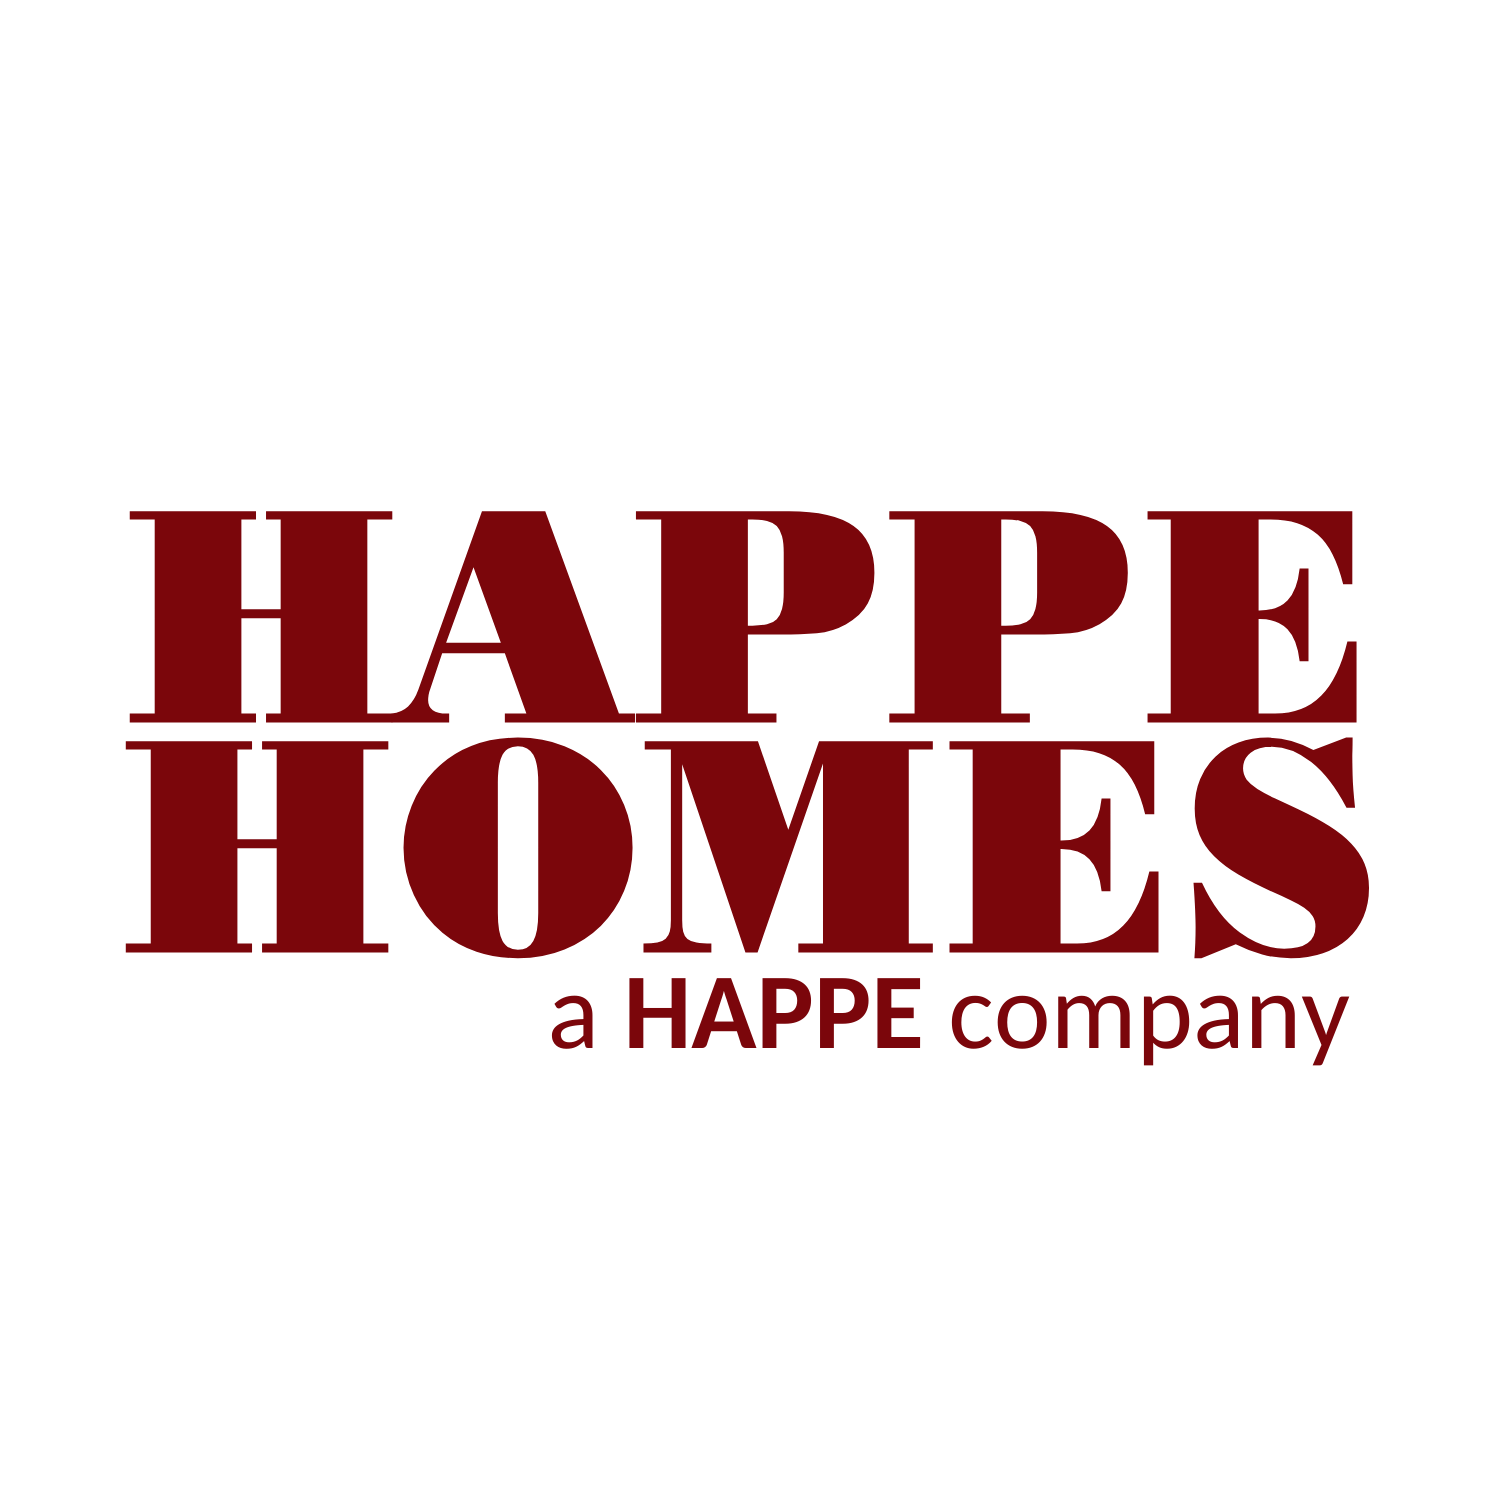 Happe Homes